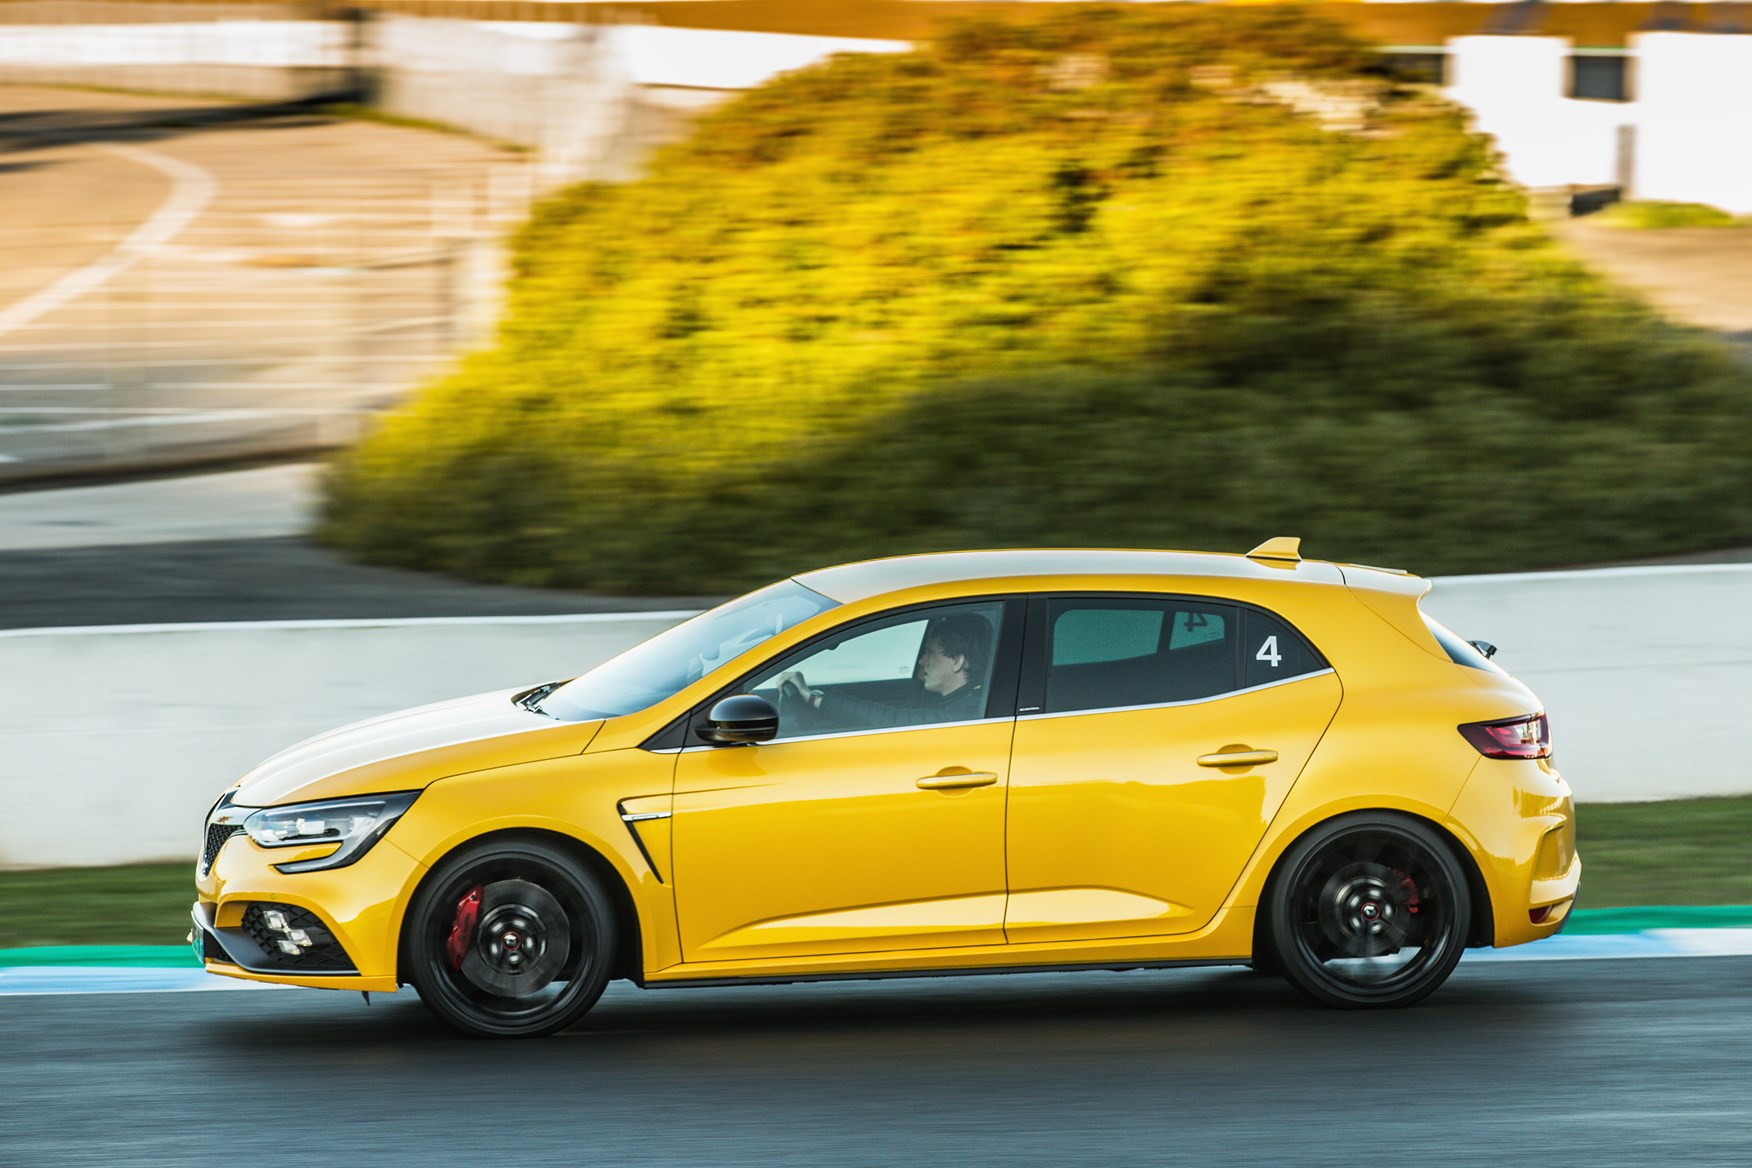 Renault Megane R S 2018 review return of the king